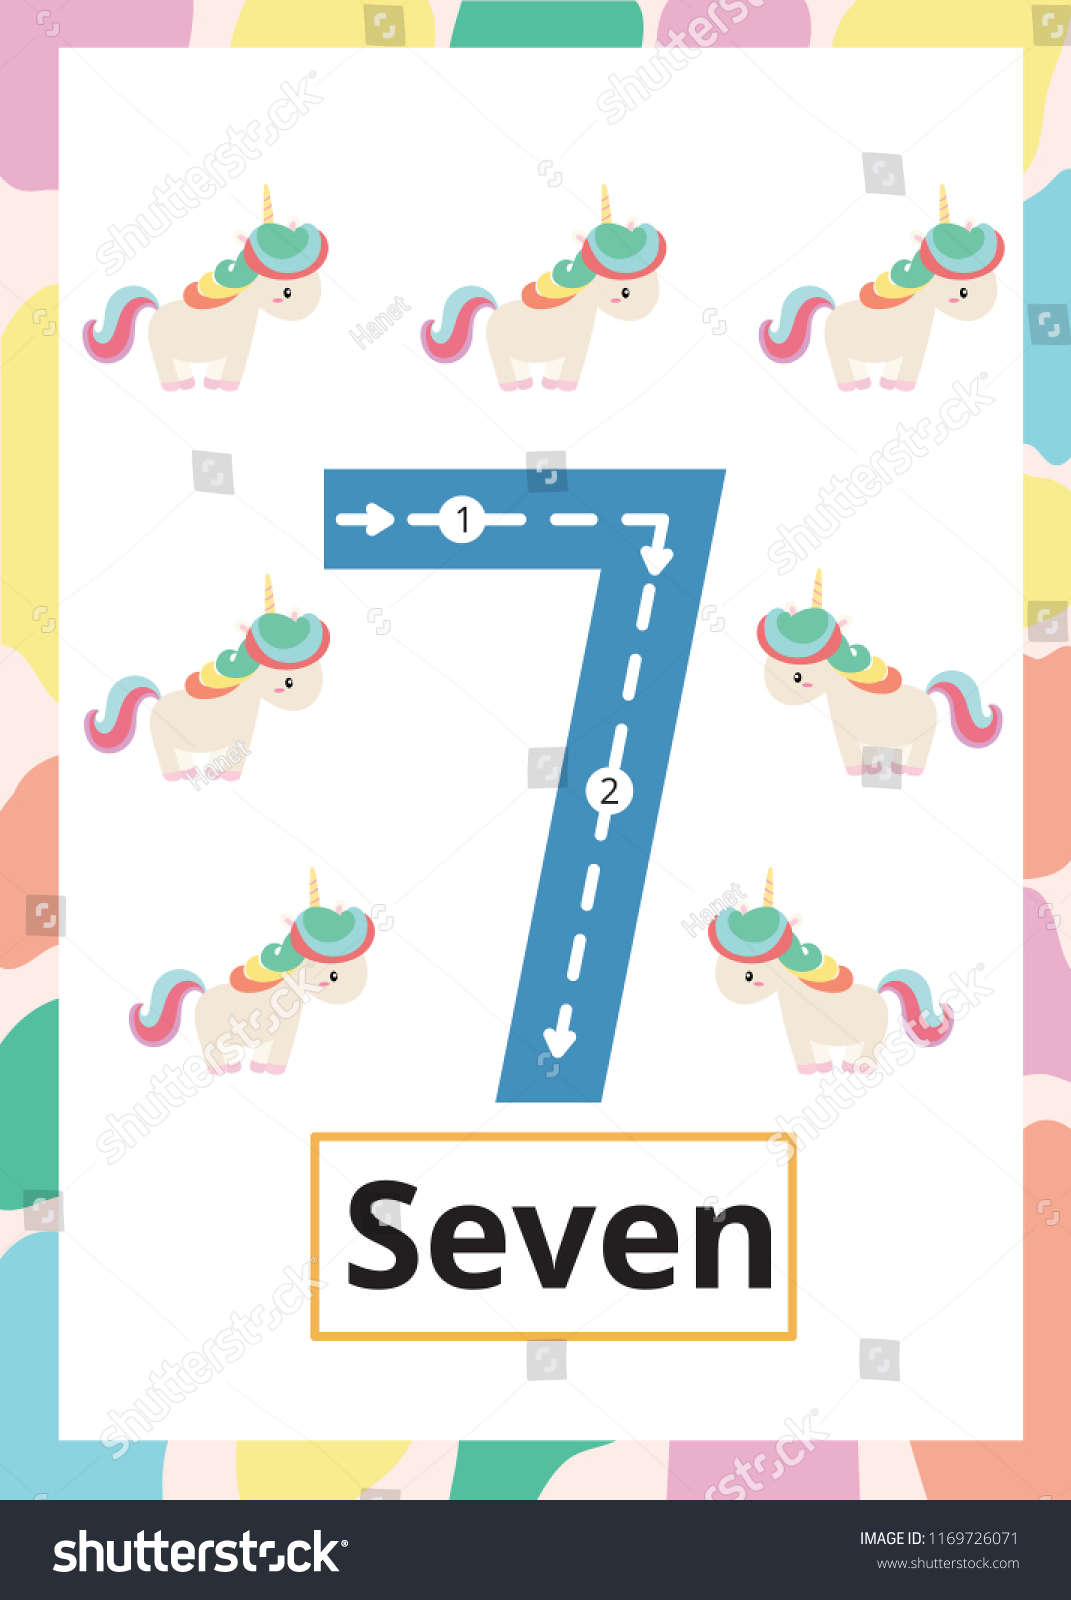 Number Tracing Worksheet Seven 7 Kid Stock Vector (Royalty Free ...